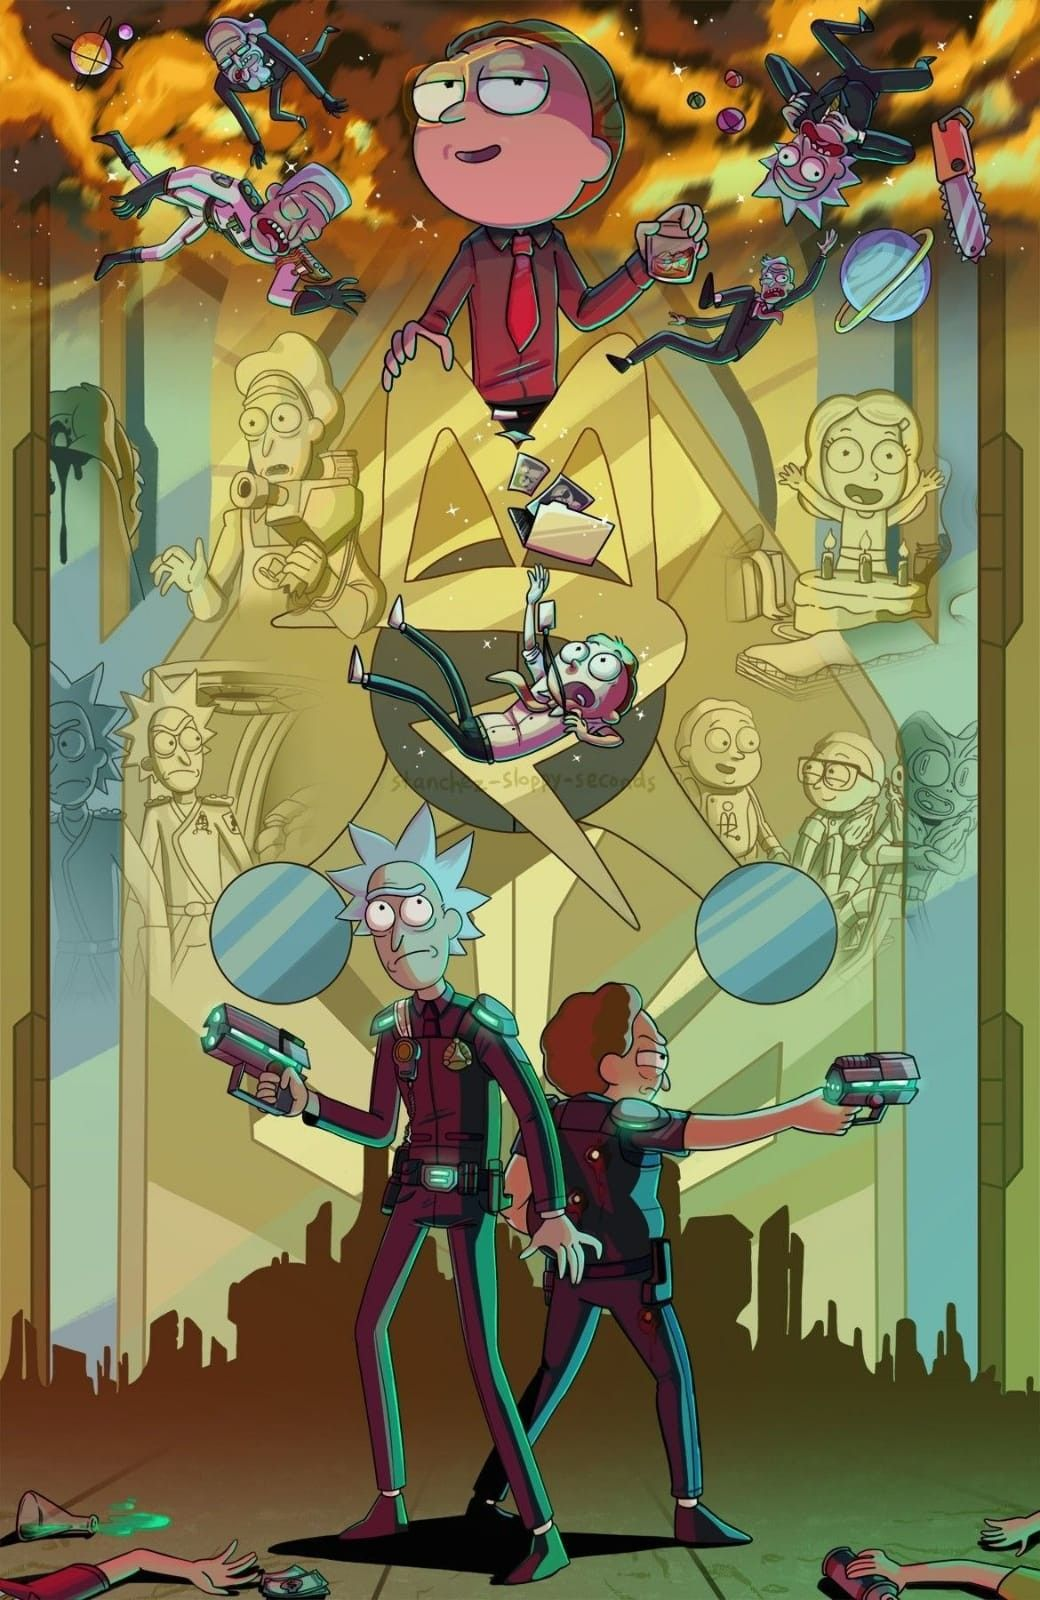 Police In 2020 Rick And Morty Poster Rick And Morty Morty